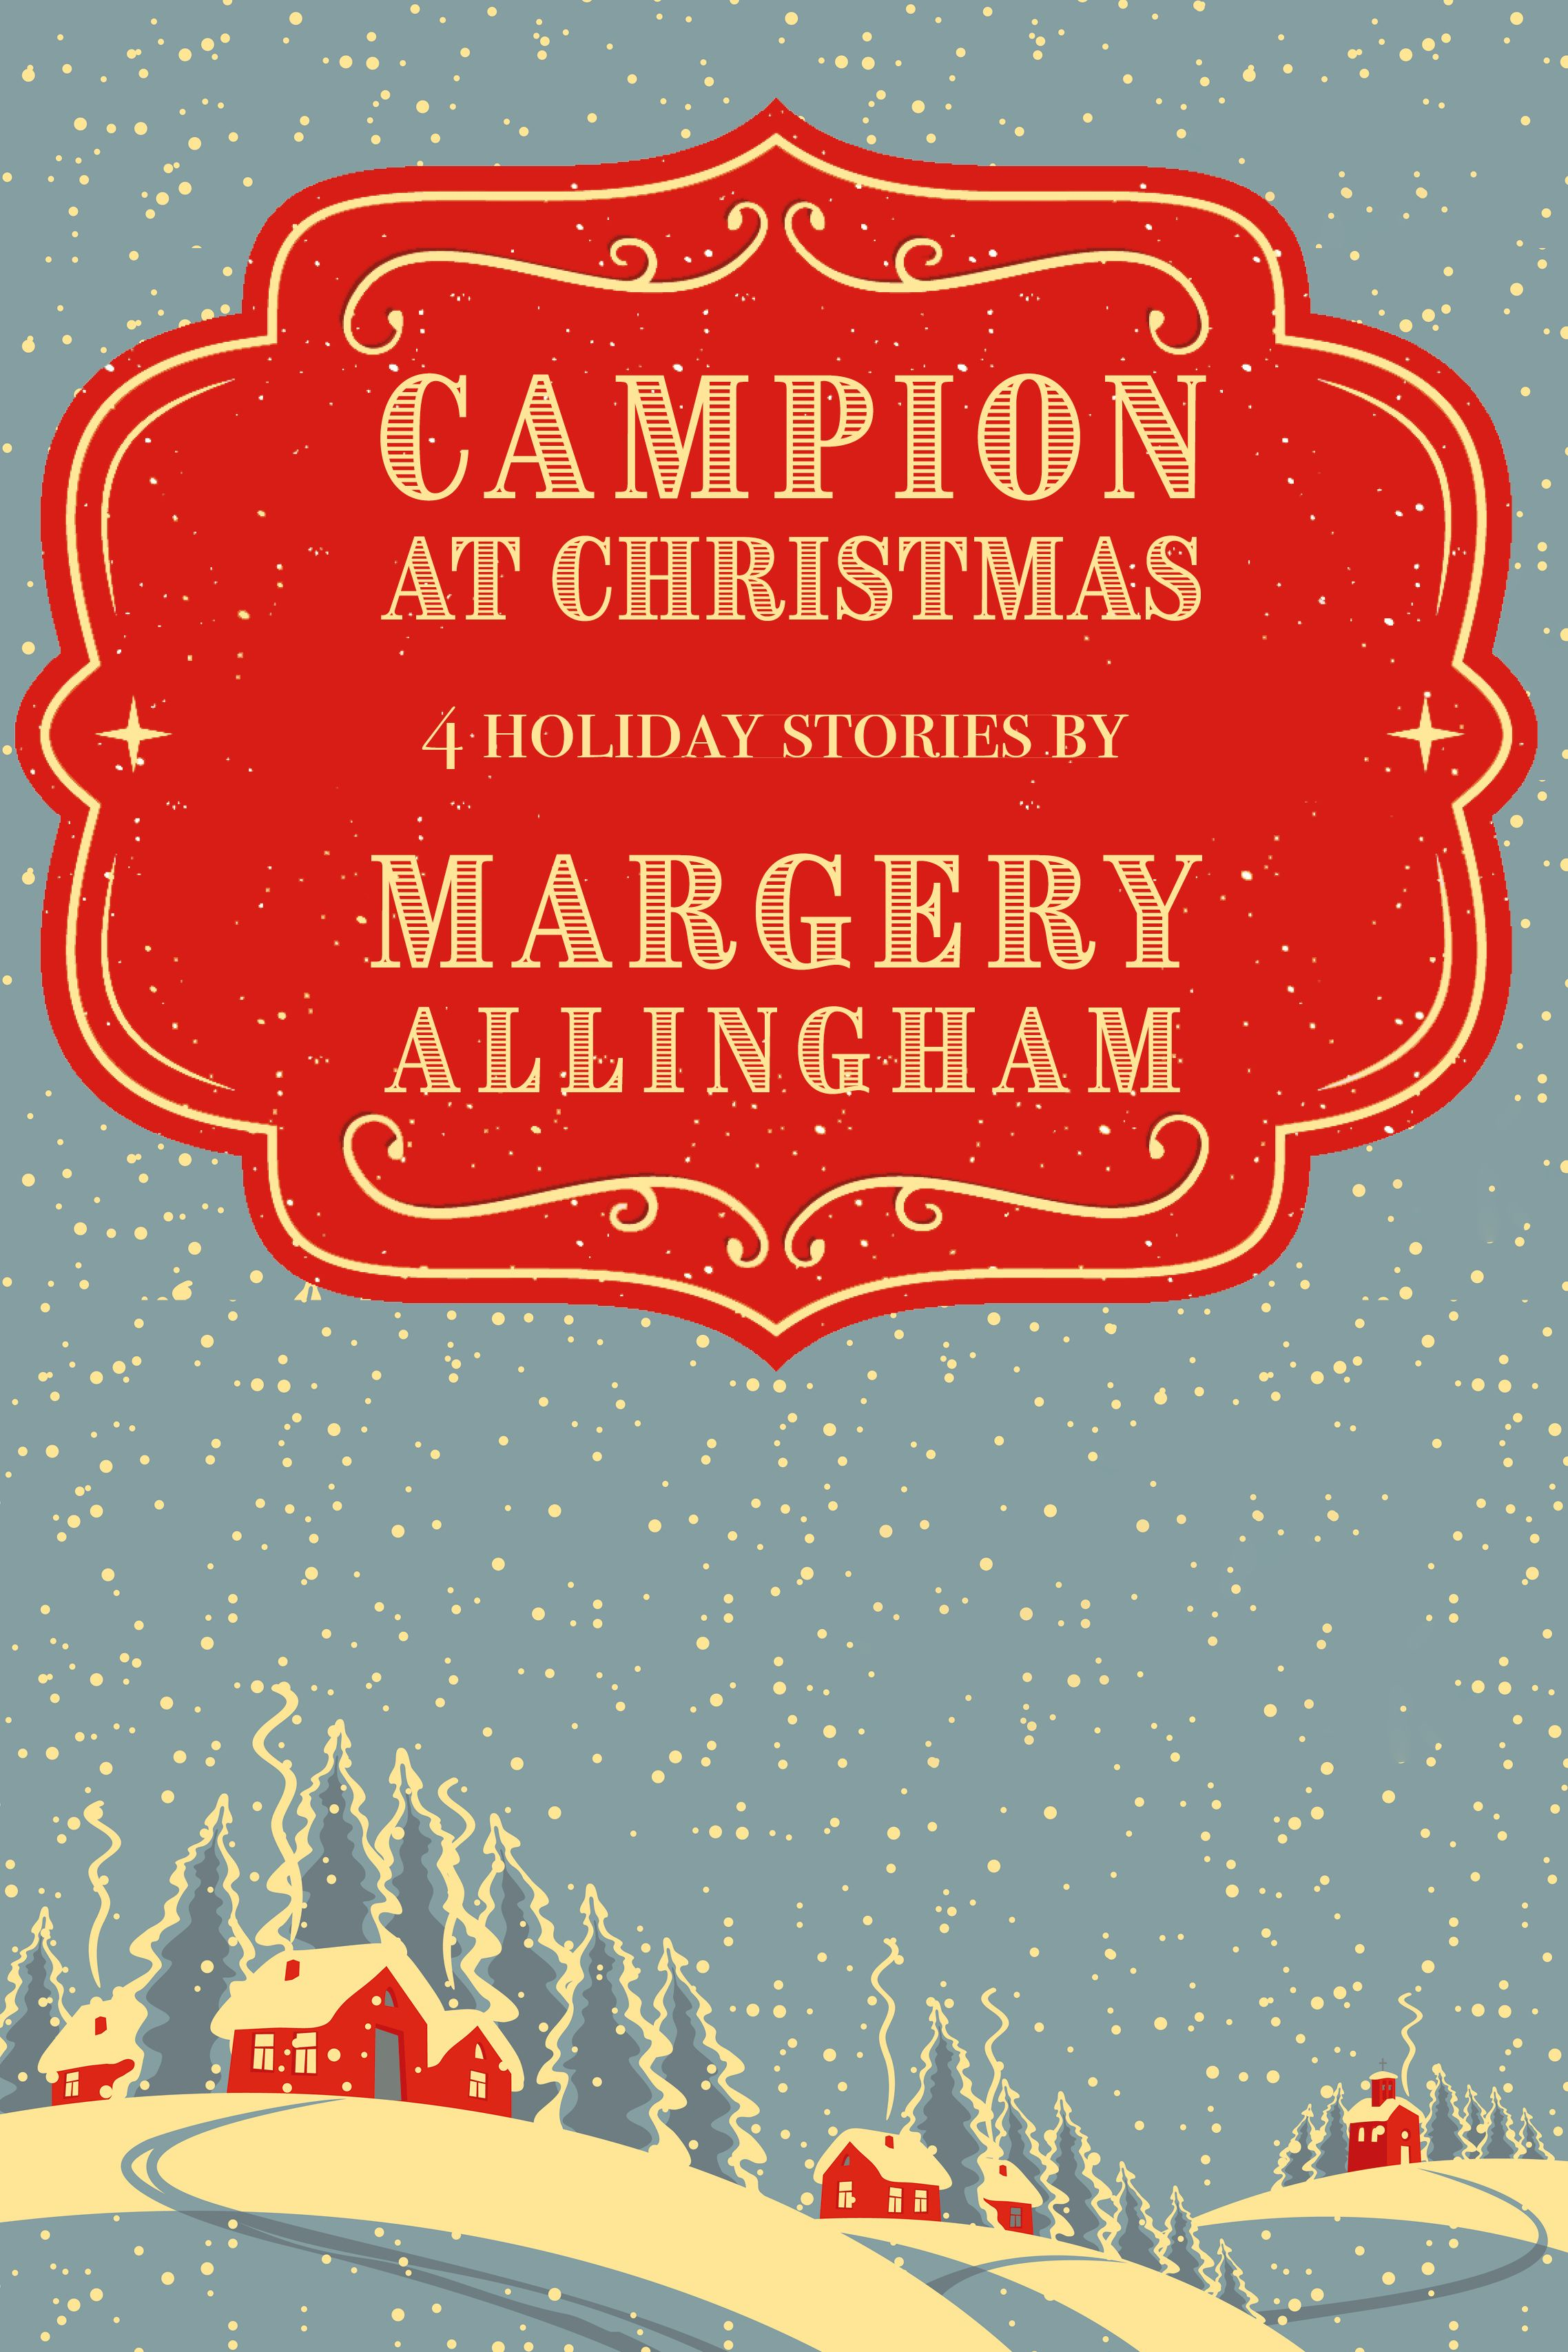 Featuring two classic Campion mysteries and two special